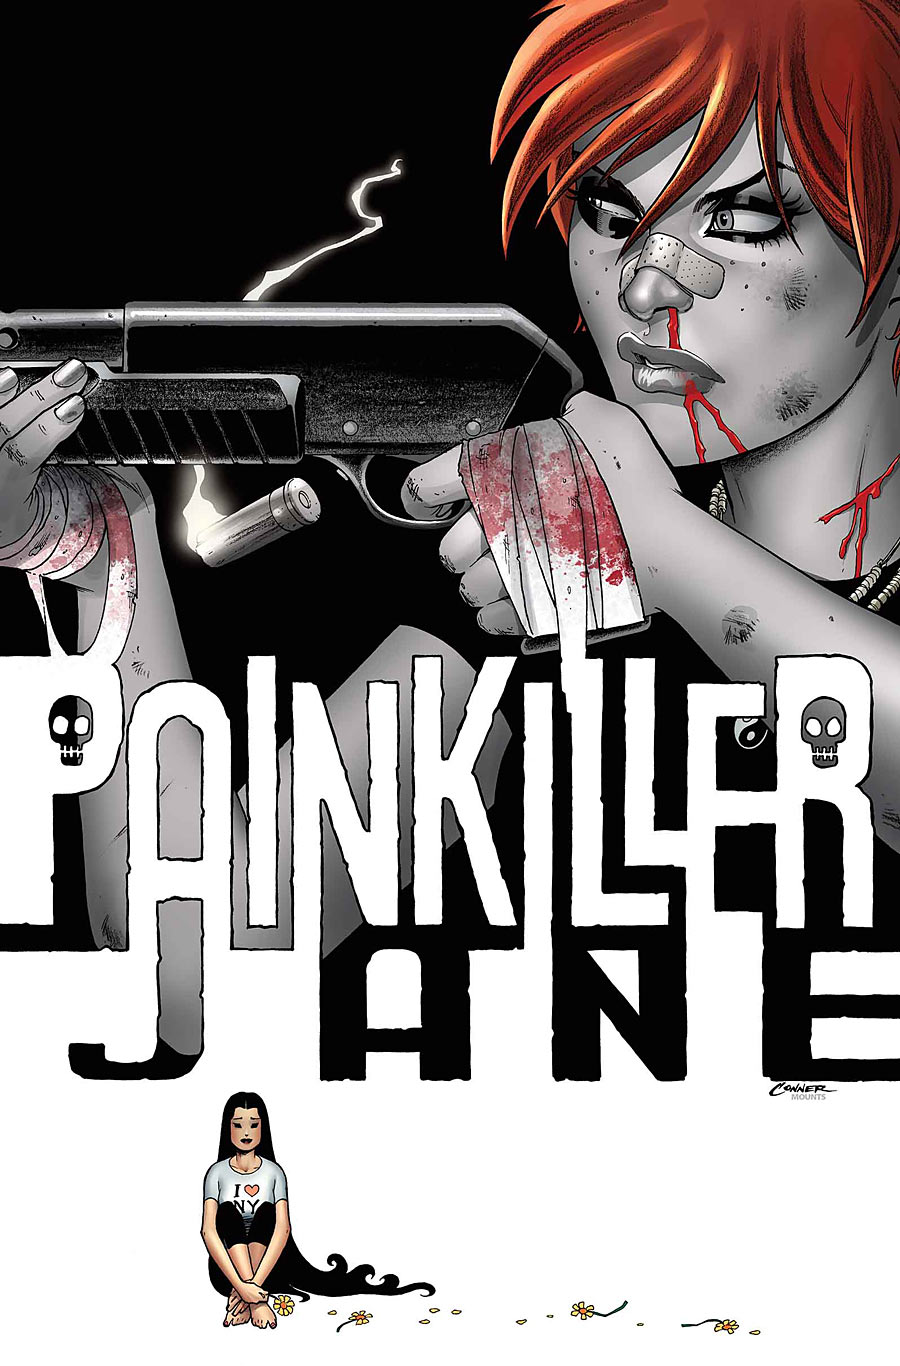 Painkiller jane picture 91